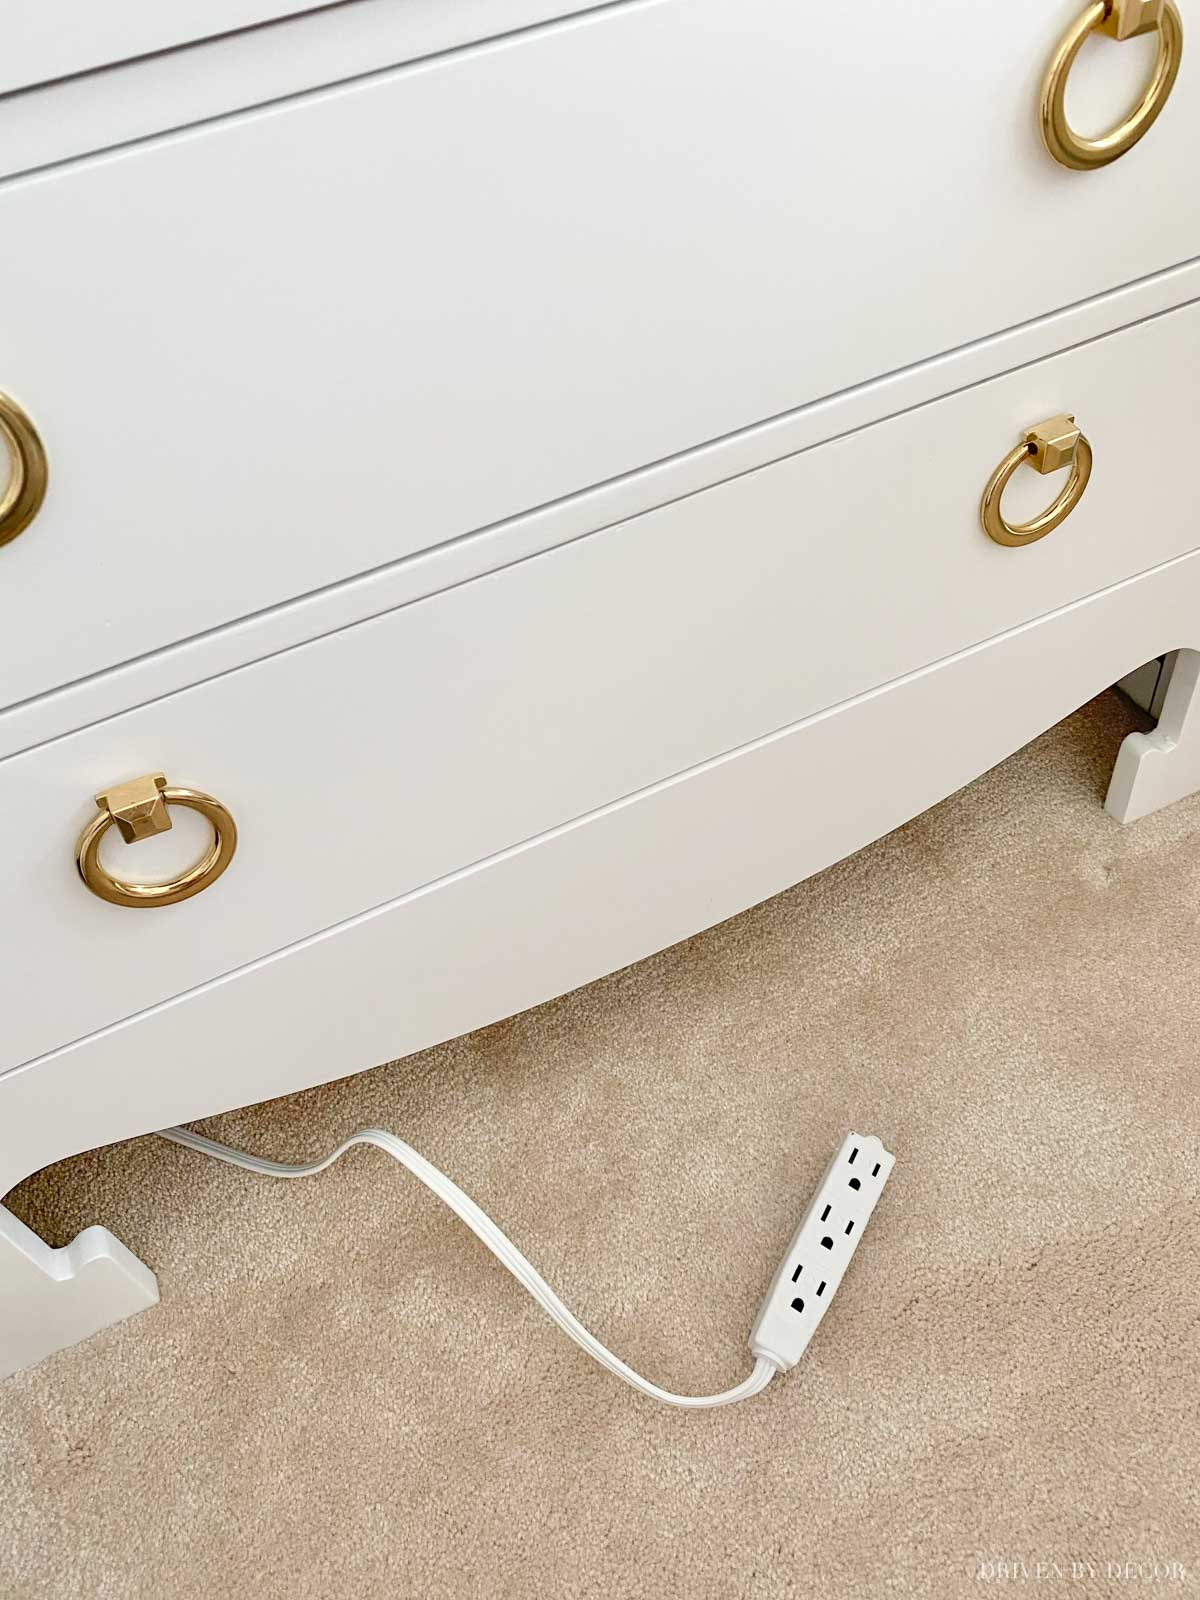 A simple solution for easy access to an outlet behind a piece of furniture!